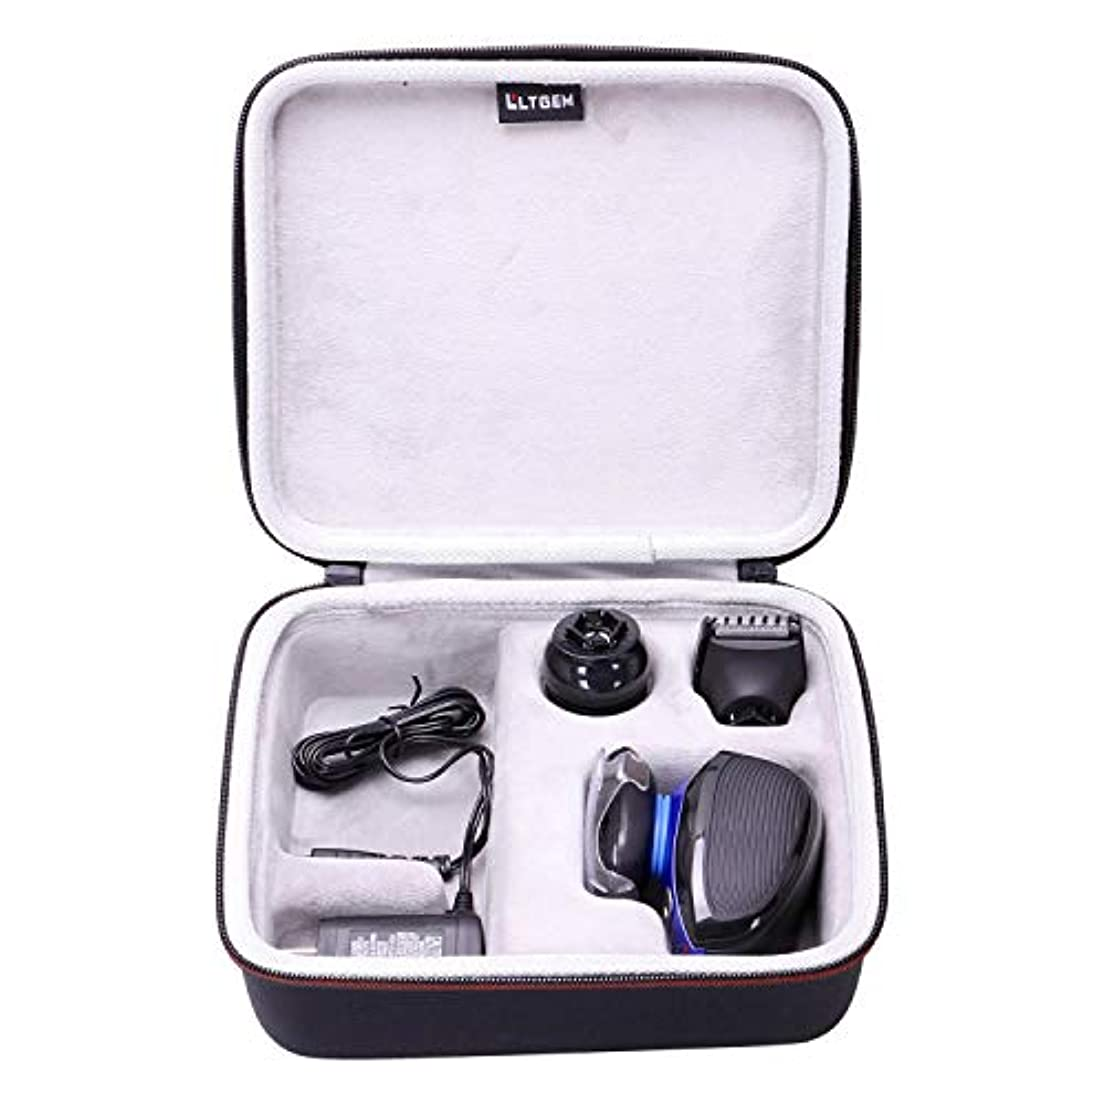 LTGEM Hard Case for Remington XR1400 Verso Wet & Dry Men's Electric Razor Shaver & Trimmer Grooming Kit 141[並行輸入]